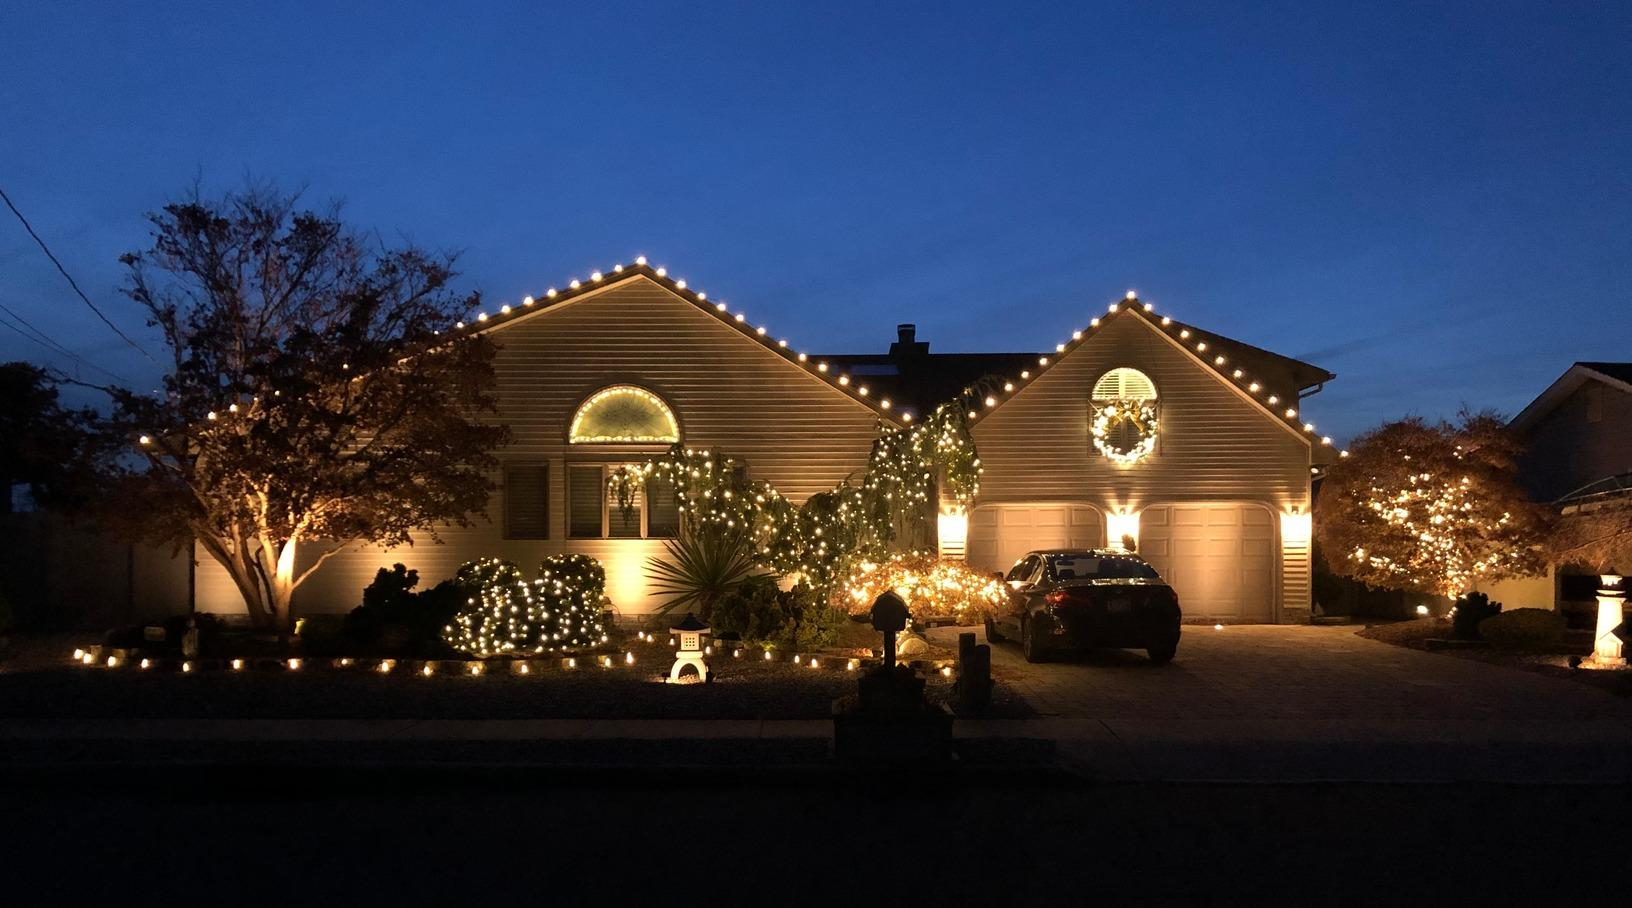 Christmas Lights in Toms River, NJ - After Photo